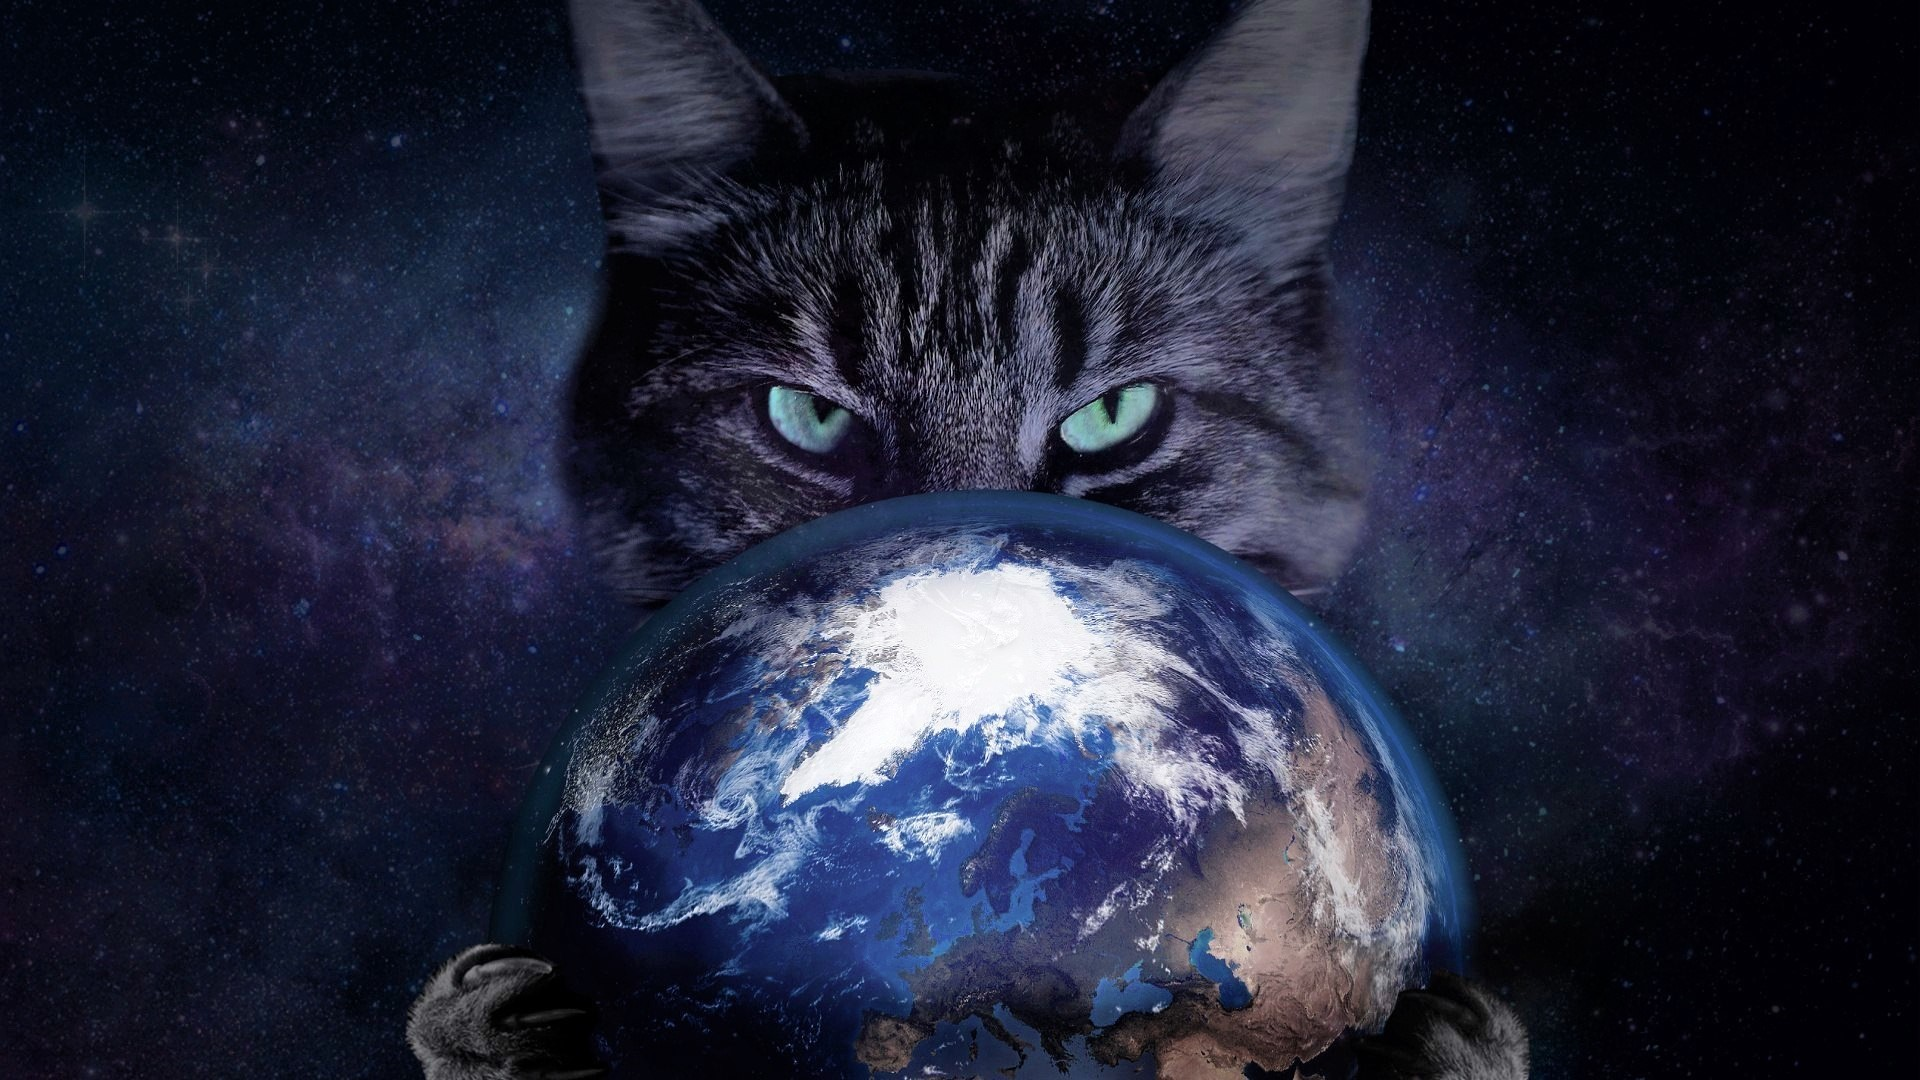 Photography – Manipulation Artistic Photoshop Cat Planet Earth Wallpaper